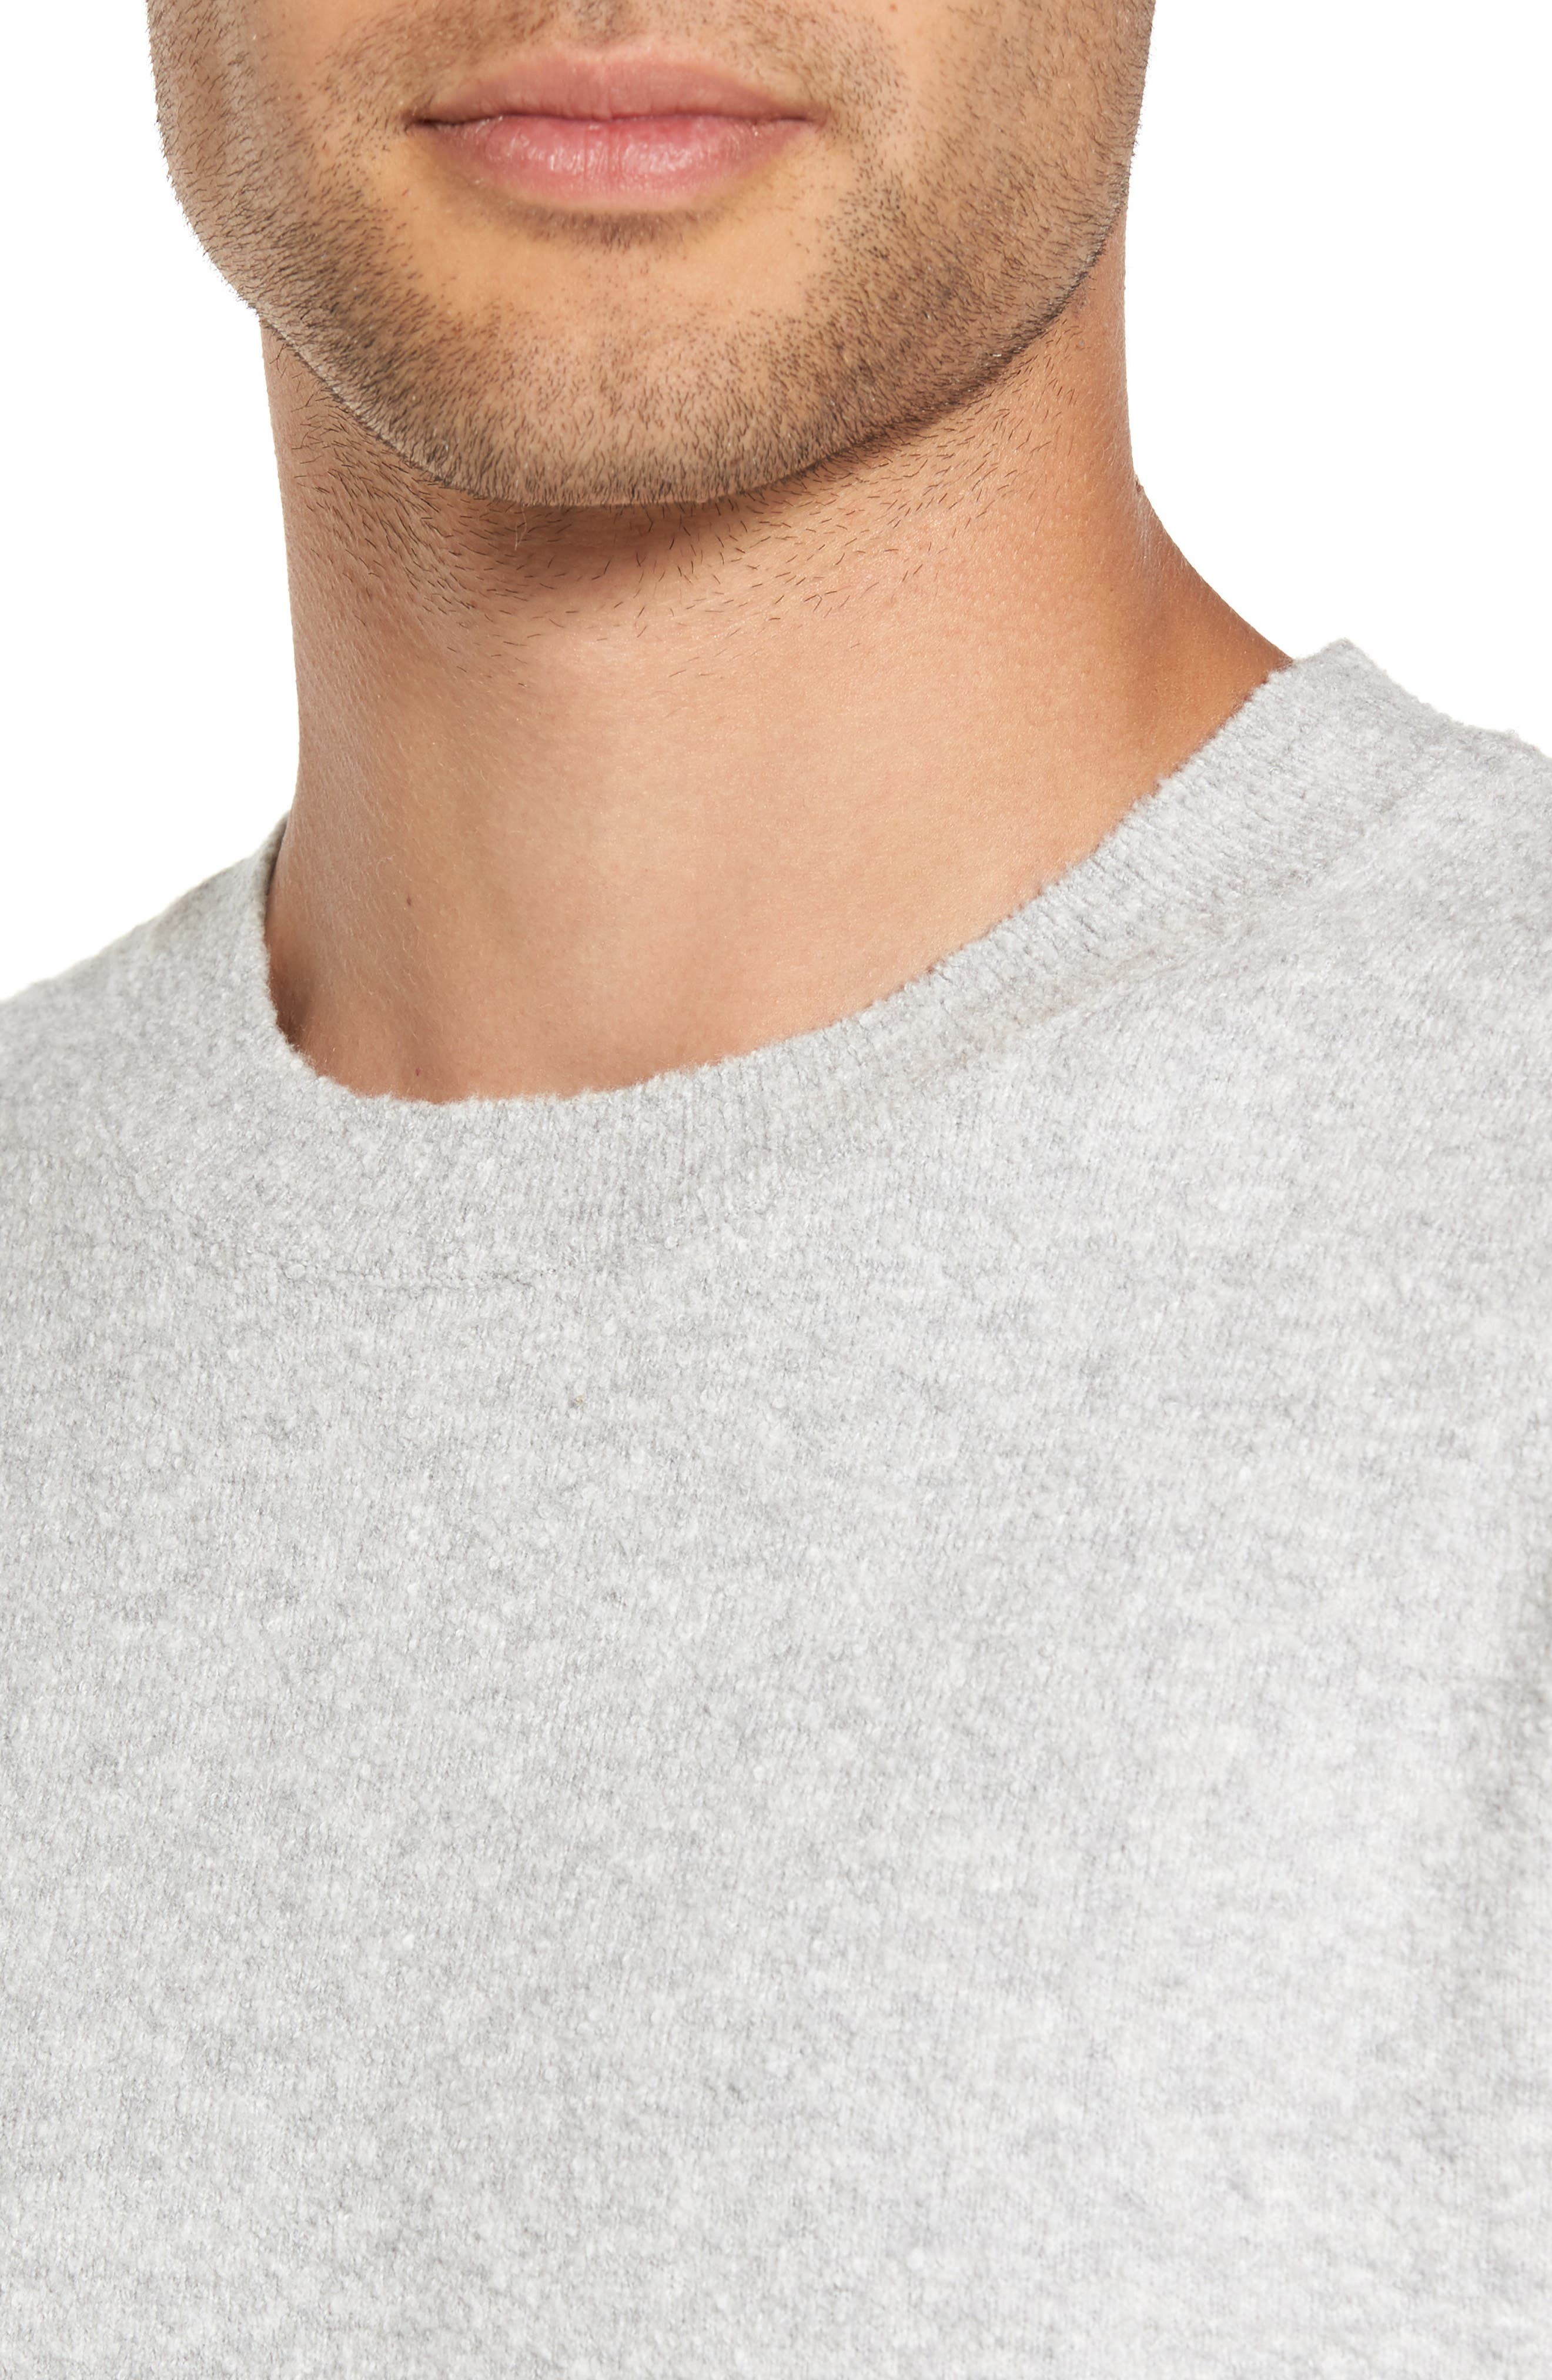 Nathaniel Classic Fit Sweater,                             Alternate thumbnail 4, color,                             Lunar Surface